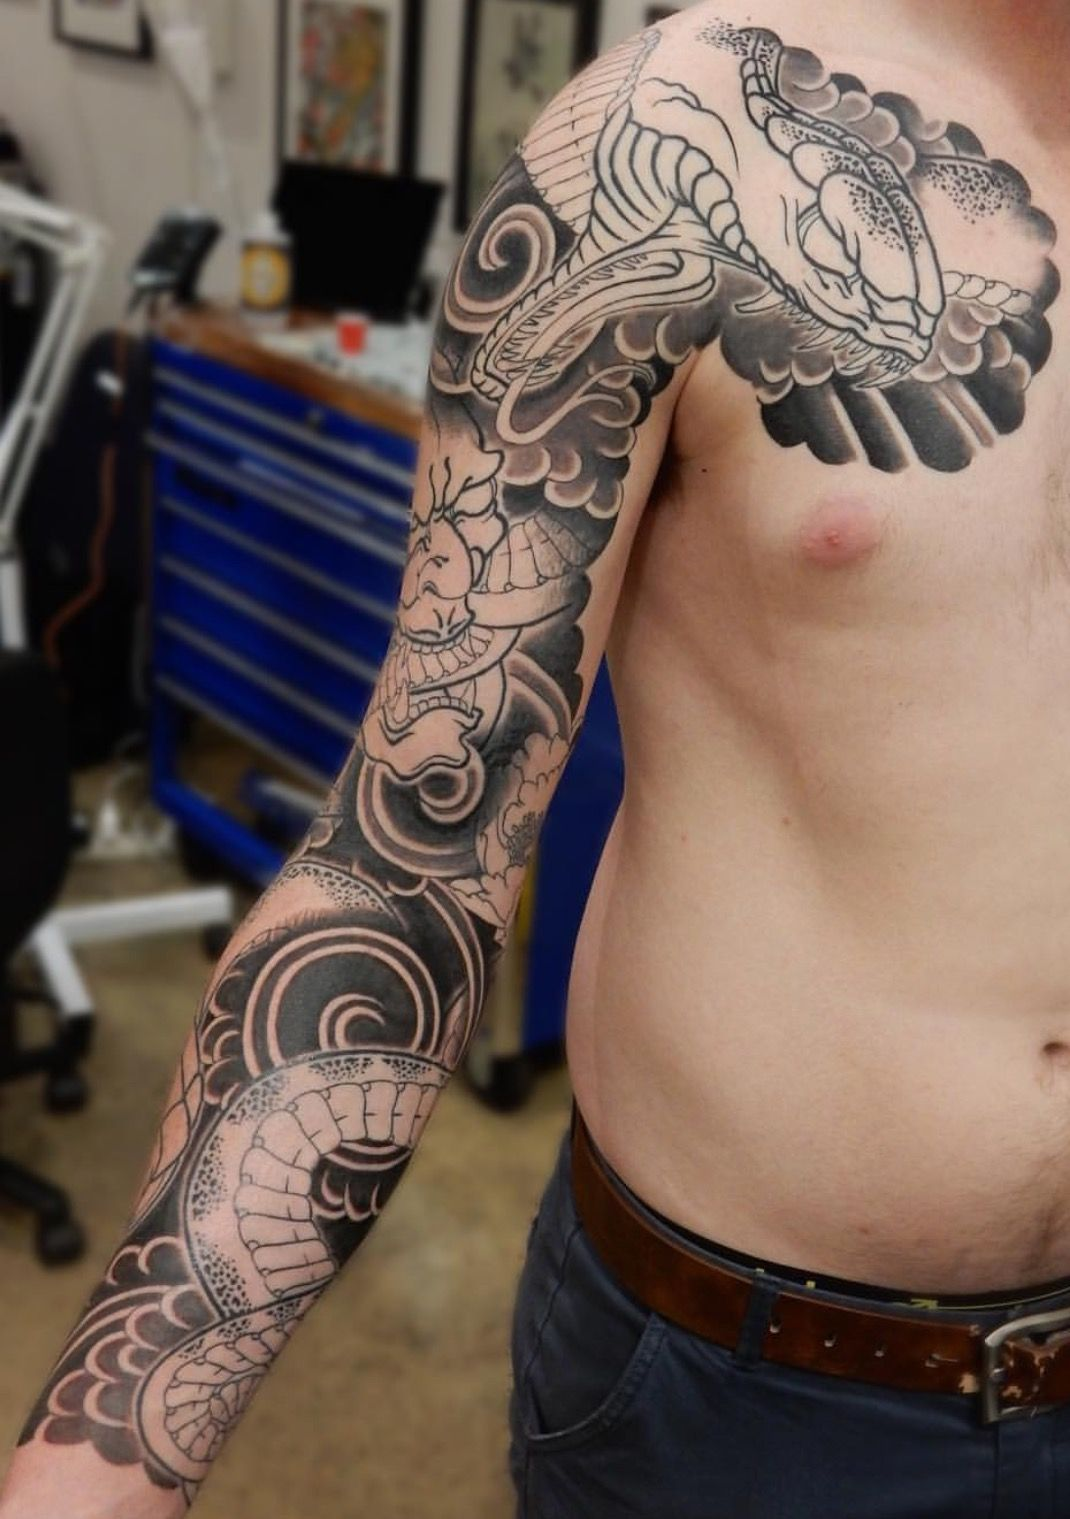 Pin By C Pulsifer On Tattoo Japanese Sleeve Tattoos Japanese Tattoo Tattoo Sleeve Designs